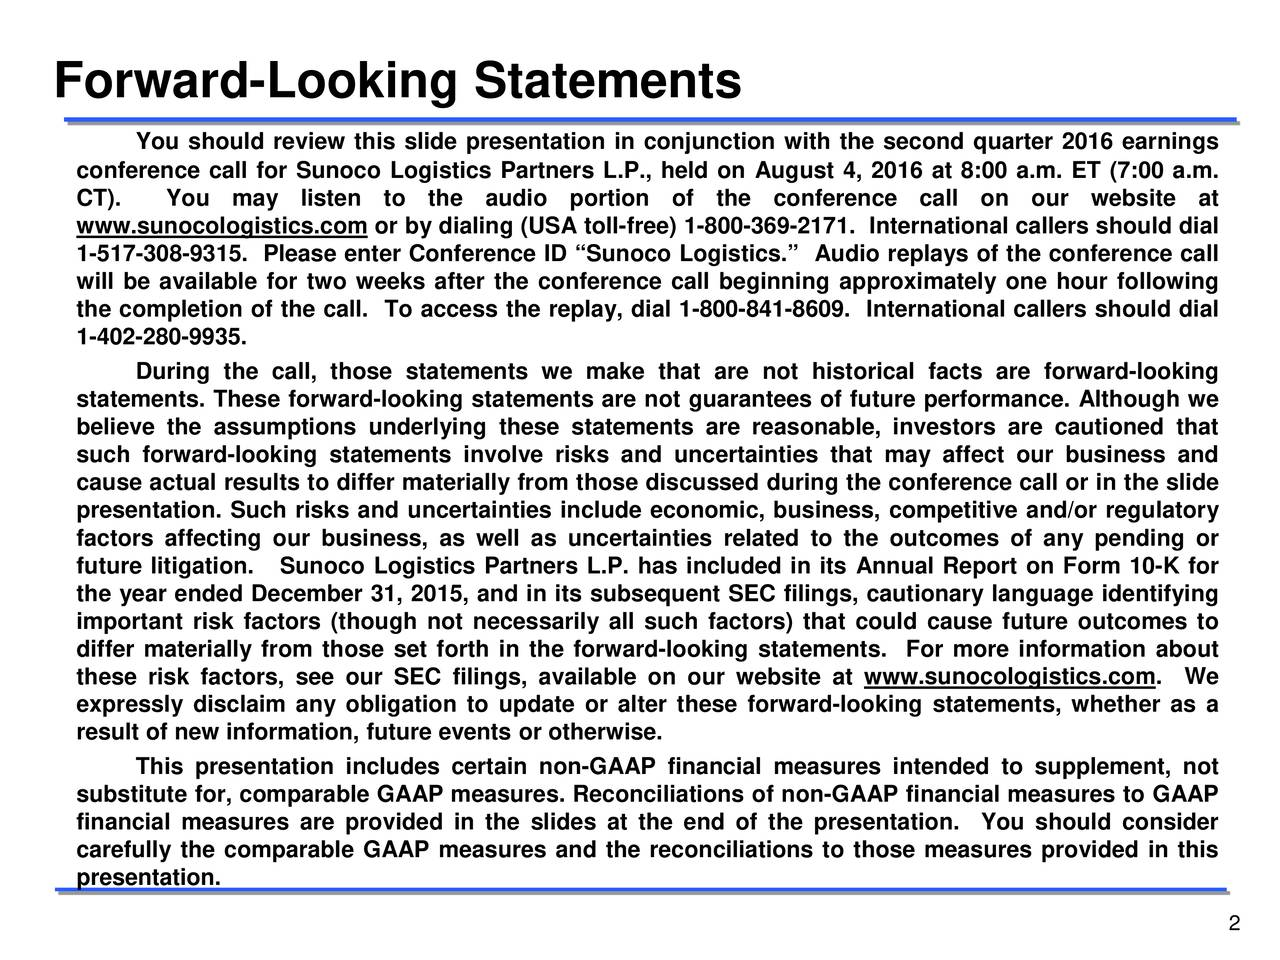 You should review this slide presentation in conjunction with the second quarter 2016 earnings conference call for Sunoco Logistics Partners L.P., held on August 4, 2016 at 8:00 a.m. ET (7:00 a.m. CT). You may listen to the audio portion of the conference call on our website at www .sunocologistics.com or by dialing (USA toll-free) 1-800-369-2171. International callers should dial 1-517-308-9315. Please enter Conference ID Sunoco Logistics. Audio replays of the conference call will be available for two weeks after the conference call beginning approximately one hour following the completion of the call. To access the replay, dial 1-800-841-8609. International callers should dial 1-402-280-9935. During the call, those statements we make that are not historical facts are forward-looking statements. These forward-looking statements are not guarantees of future performance. Although we believe the assumptions underlying these statements are reasonable, investors are cautioned that such forward-looking statements involve risks and uncertainties that may affect our business and cause actual results to differ materially from those discussed during the conference call or in the slide presentation. Such risks and uncertainties include economic, business, competitive and/or regulatory factors affecting our business, as well as uncertainties related to the outcomes of any pending or future litigationSunoco Logistics Partners L.P. has included in its Annual Report on Form 10-K for the year ended December 31, 2015, and in its subsequent SEC filings, cautionary language identifying important risk factors (though not necessarily all such factors) that could cause future outcomes to differ materially from those set forth in the forward-looking statements. For more information about these risk factors, see our SEC filings, available on our website at www.sunocologistics.com. We expressly disclaim any obligation to update or alter these forward-looking statements, whether as a result